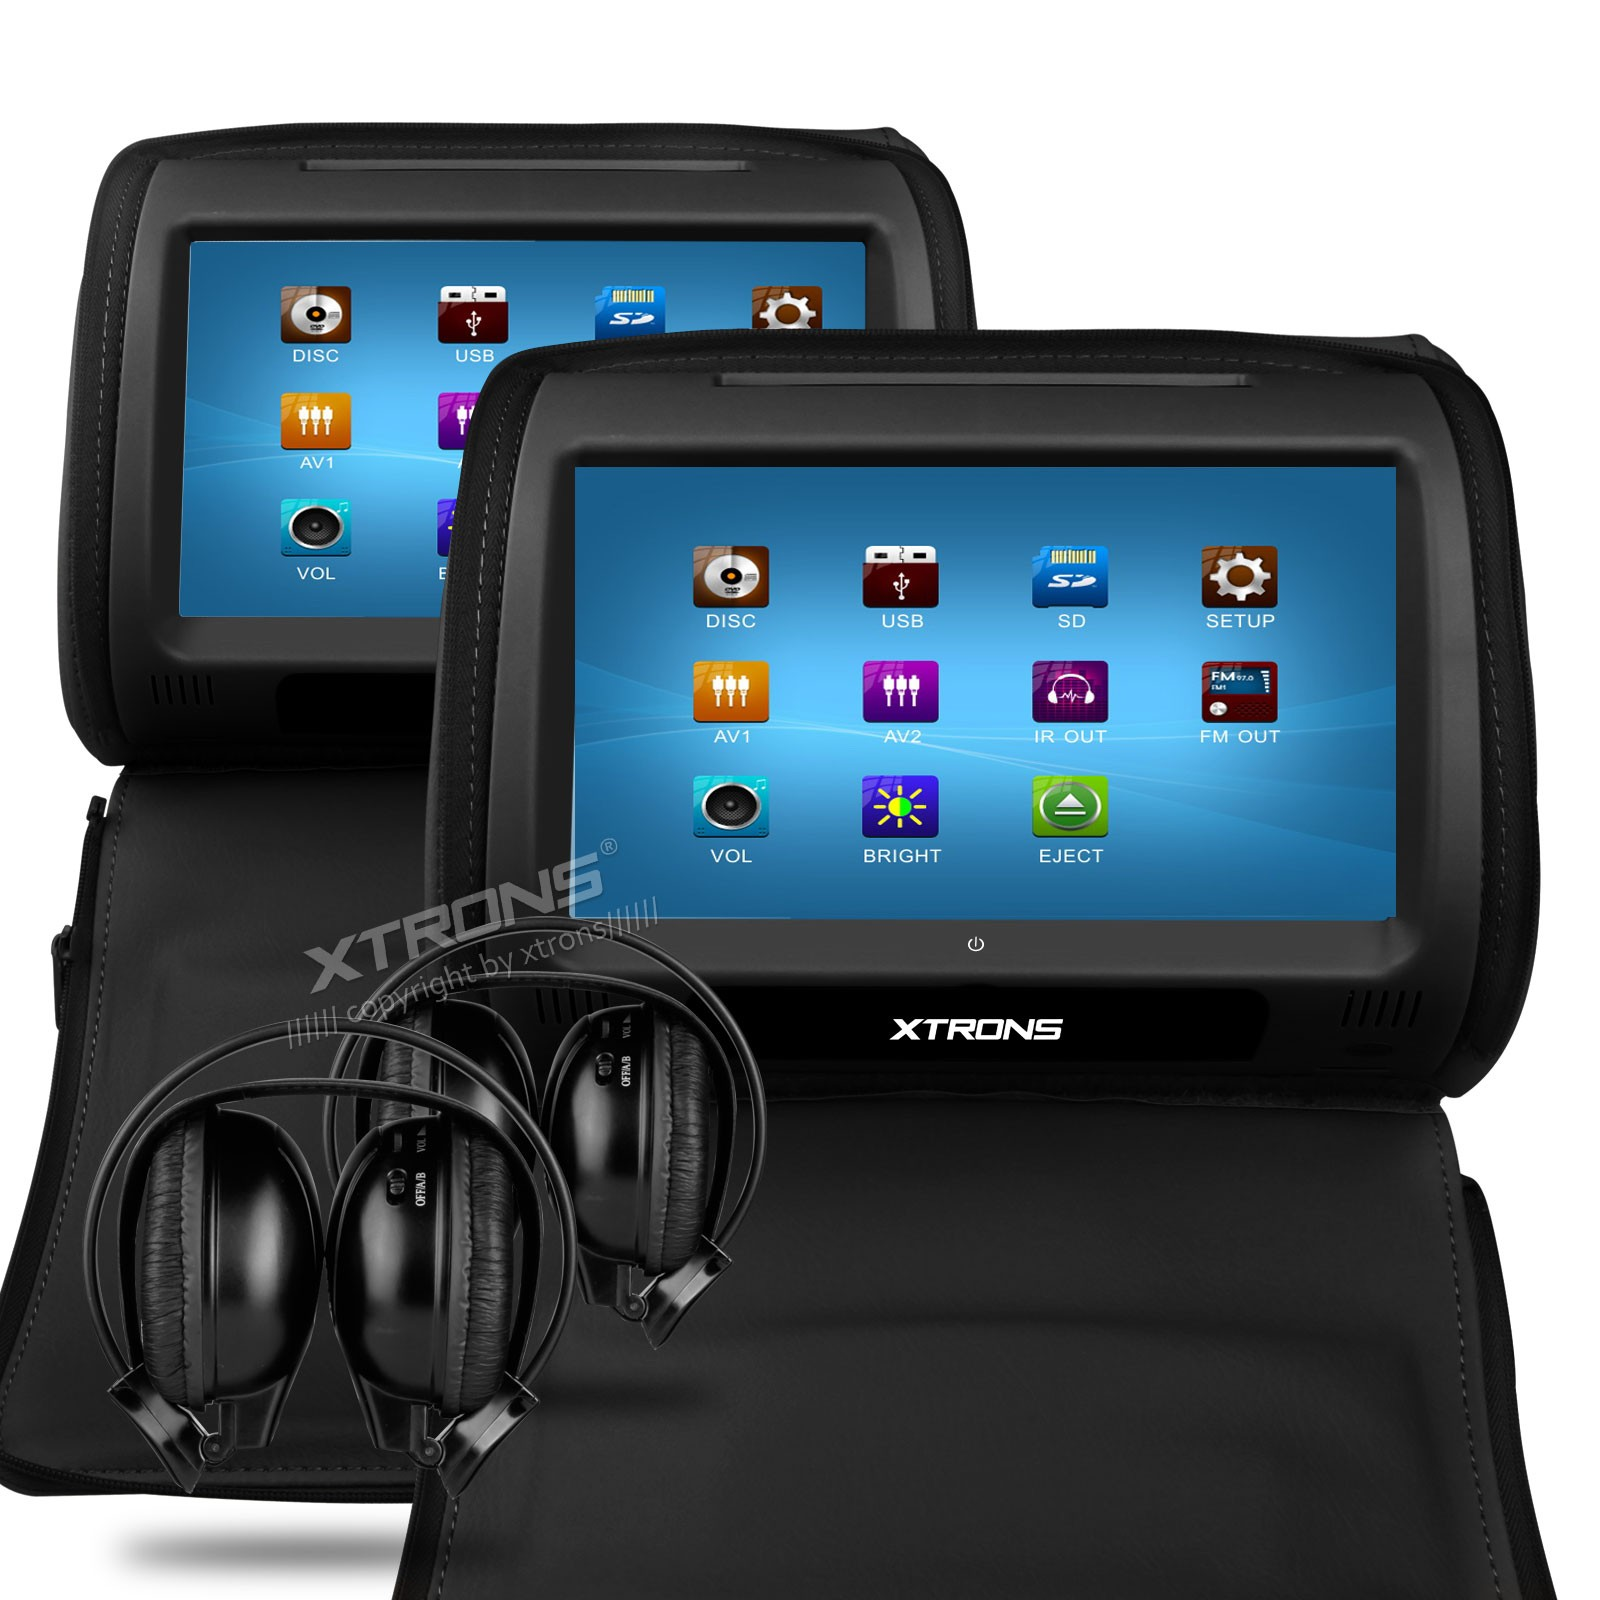 Hd908t 2 X 9 Quot In Car Touch Screen Headrest Dvd Players